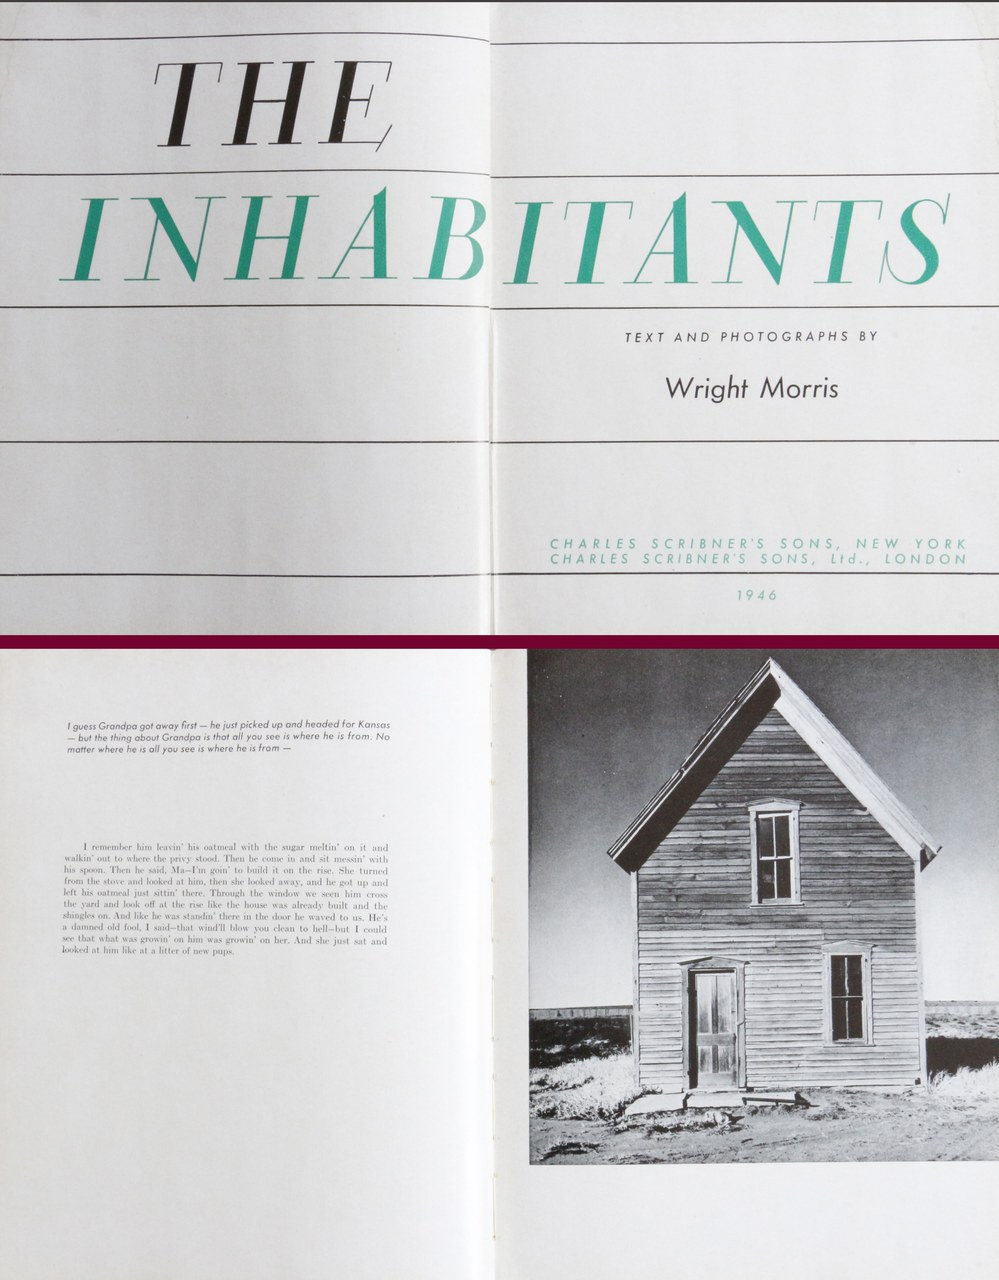 Wright Morris, The Inhabitants, New York, Charles Scribner's Sons, 1946 (frontespizio e pagina interna)